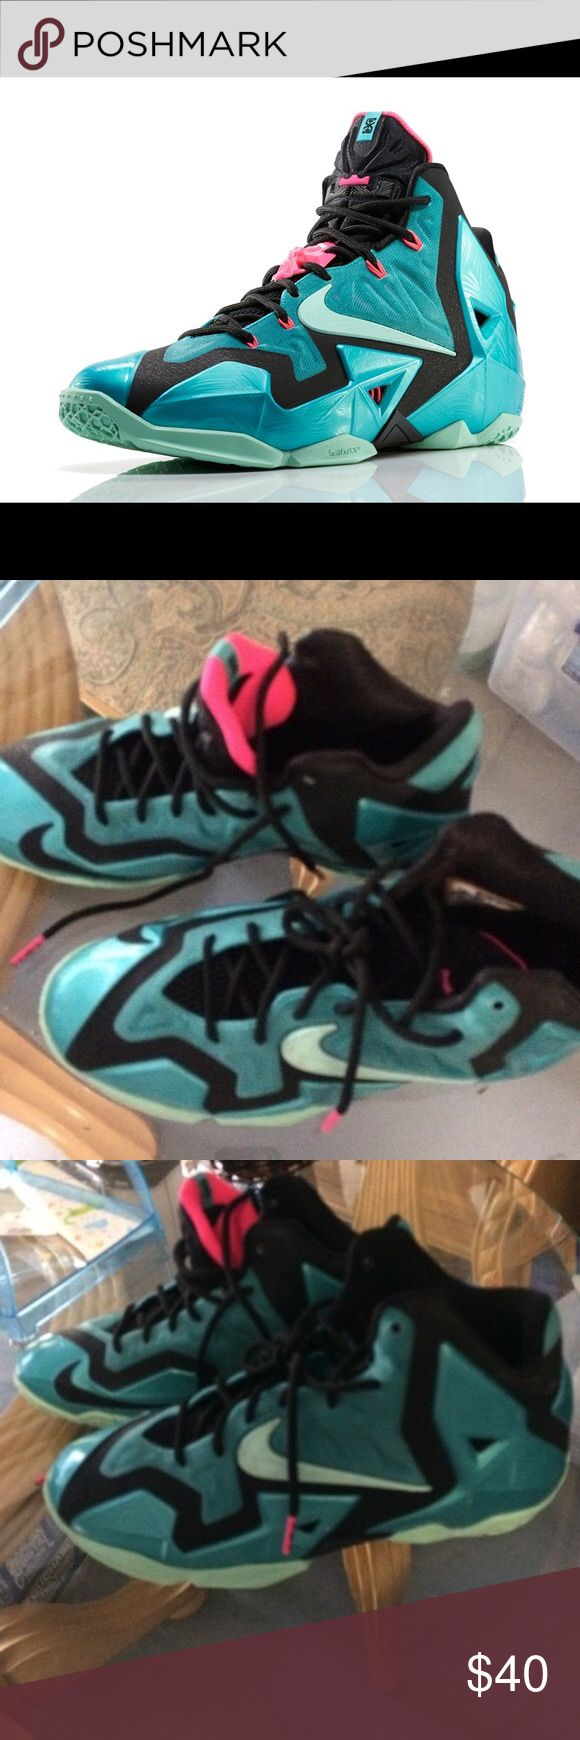 Nike Lebron 11 South Beach Good condition. No box. No bad odors, rips or decoloration. Nike Shoes Athletic Shoes